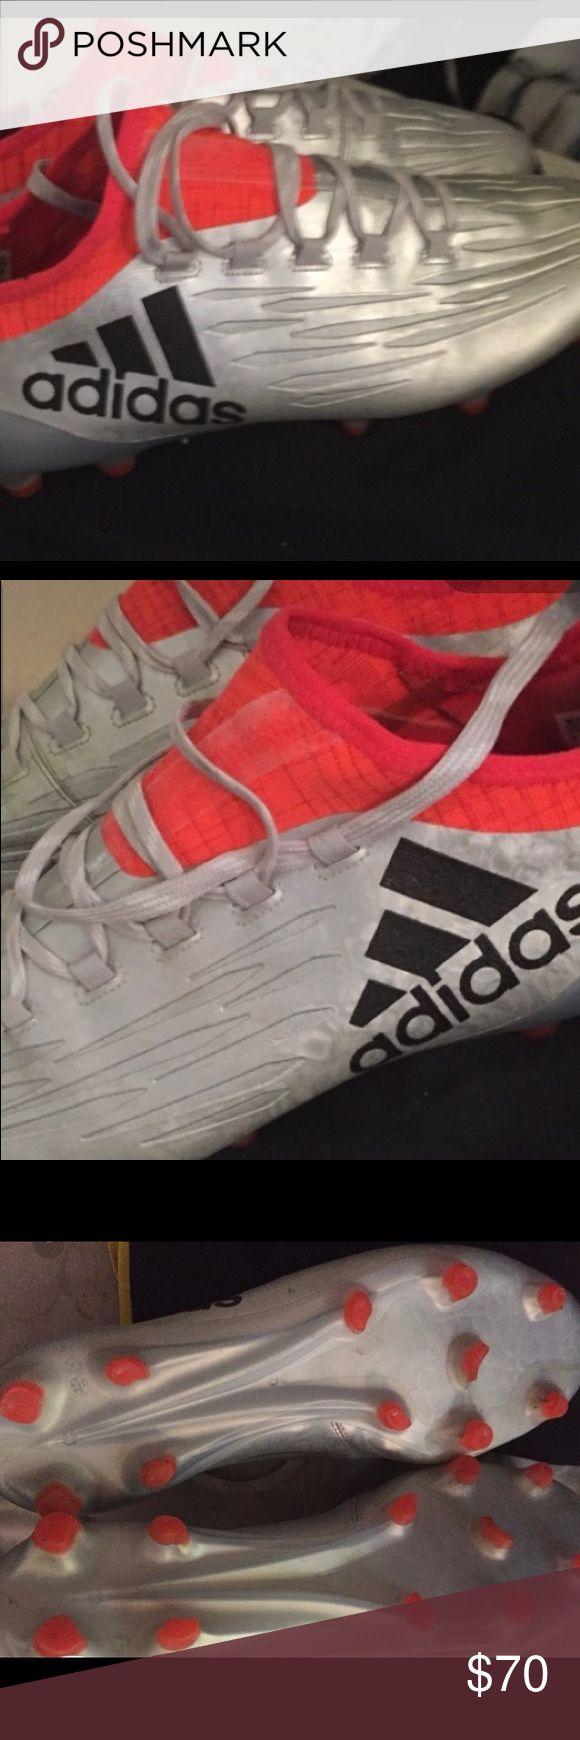 Used Adidas 16.1 X FG Men's soccer cleats Gently used incredibly comfortable boot. One scrimmage and occasionally worn while coaching my youth team. The cleats have ZERO wear. The cleats though are too blade like and don't want to accidentally step one of my kids hands. So switching to turf shoes.  10 years ago when I was playing competitively these would have been my dream boot. They are like playing on cool whip they are so light and the touch is sublime! adidas Shoes Athletic Shoes